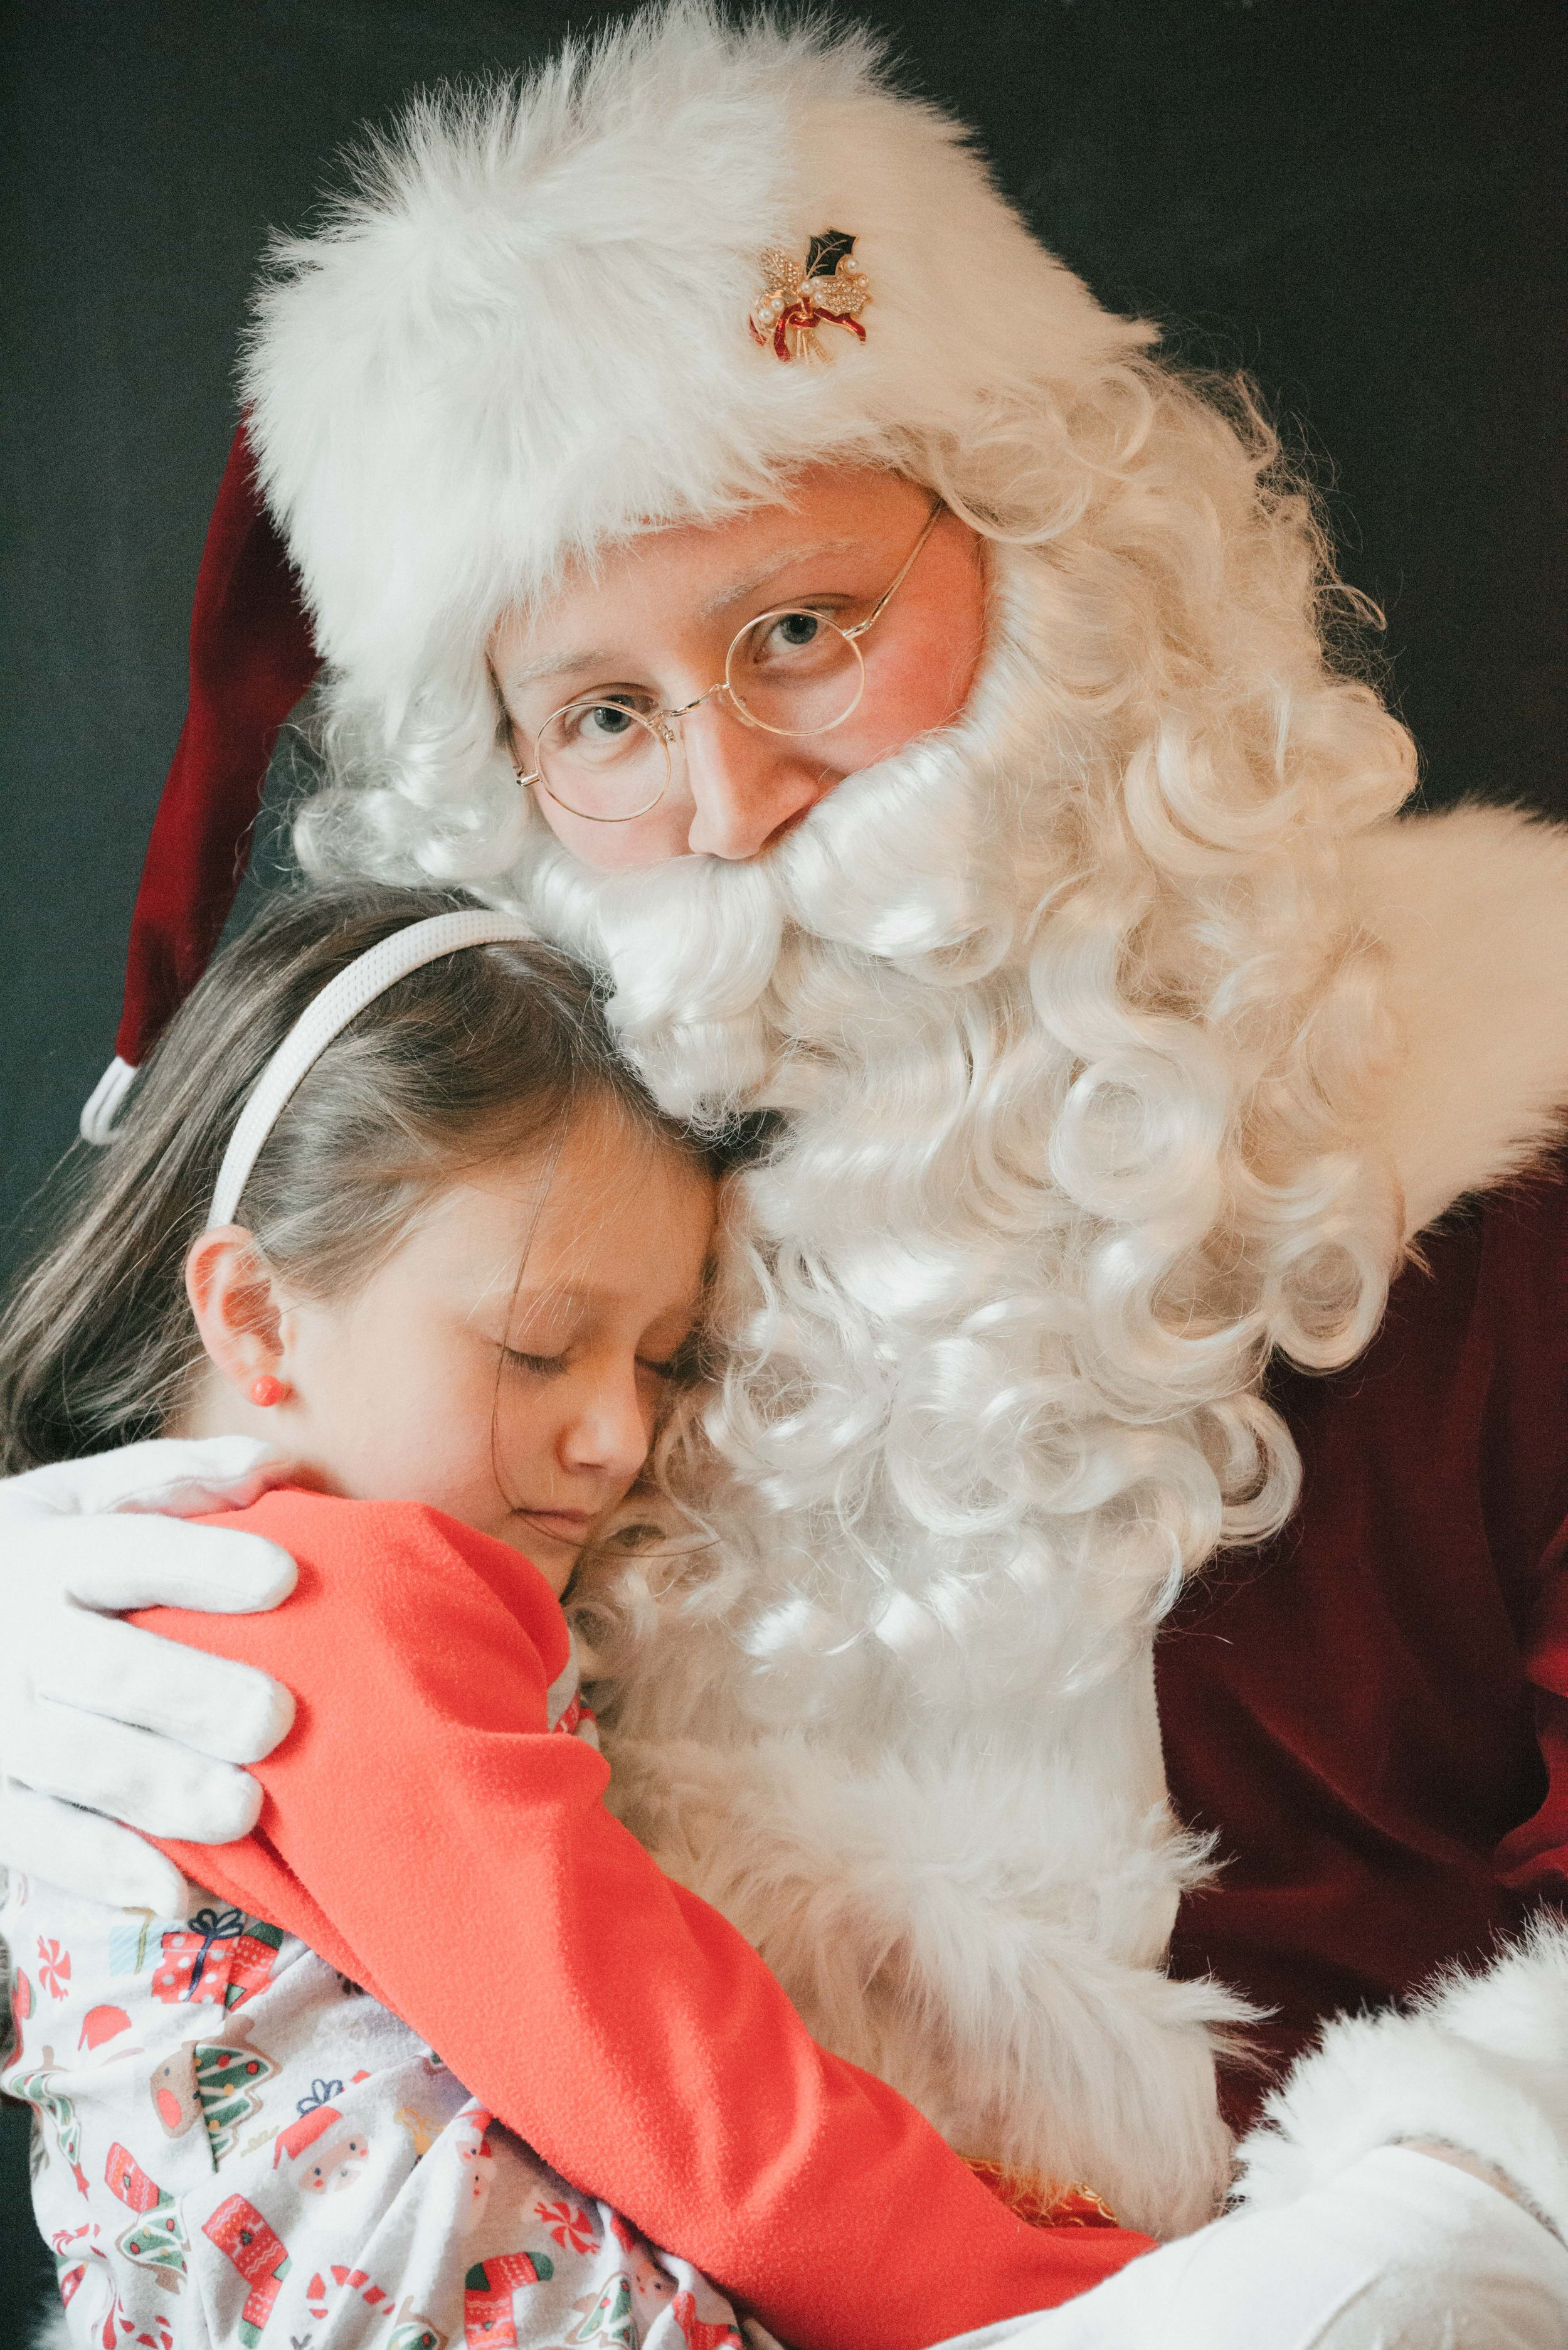 Santa with sleeping child in Christmas pajamas, Shiny Penny Studios, Cleveland